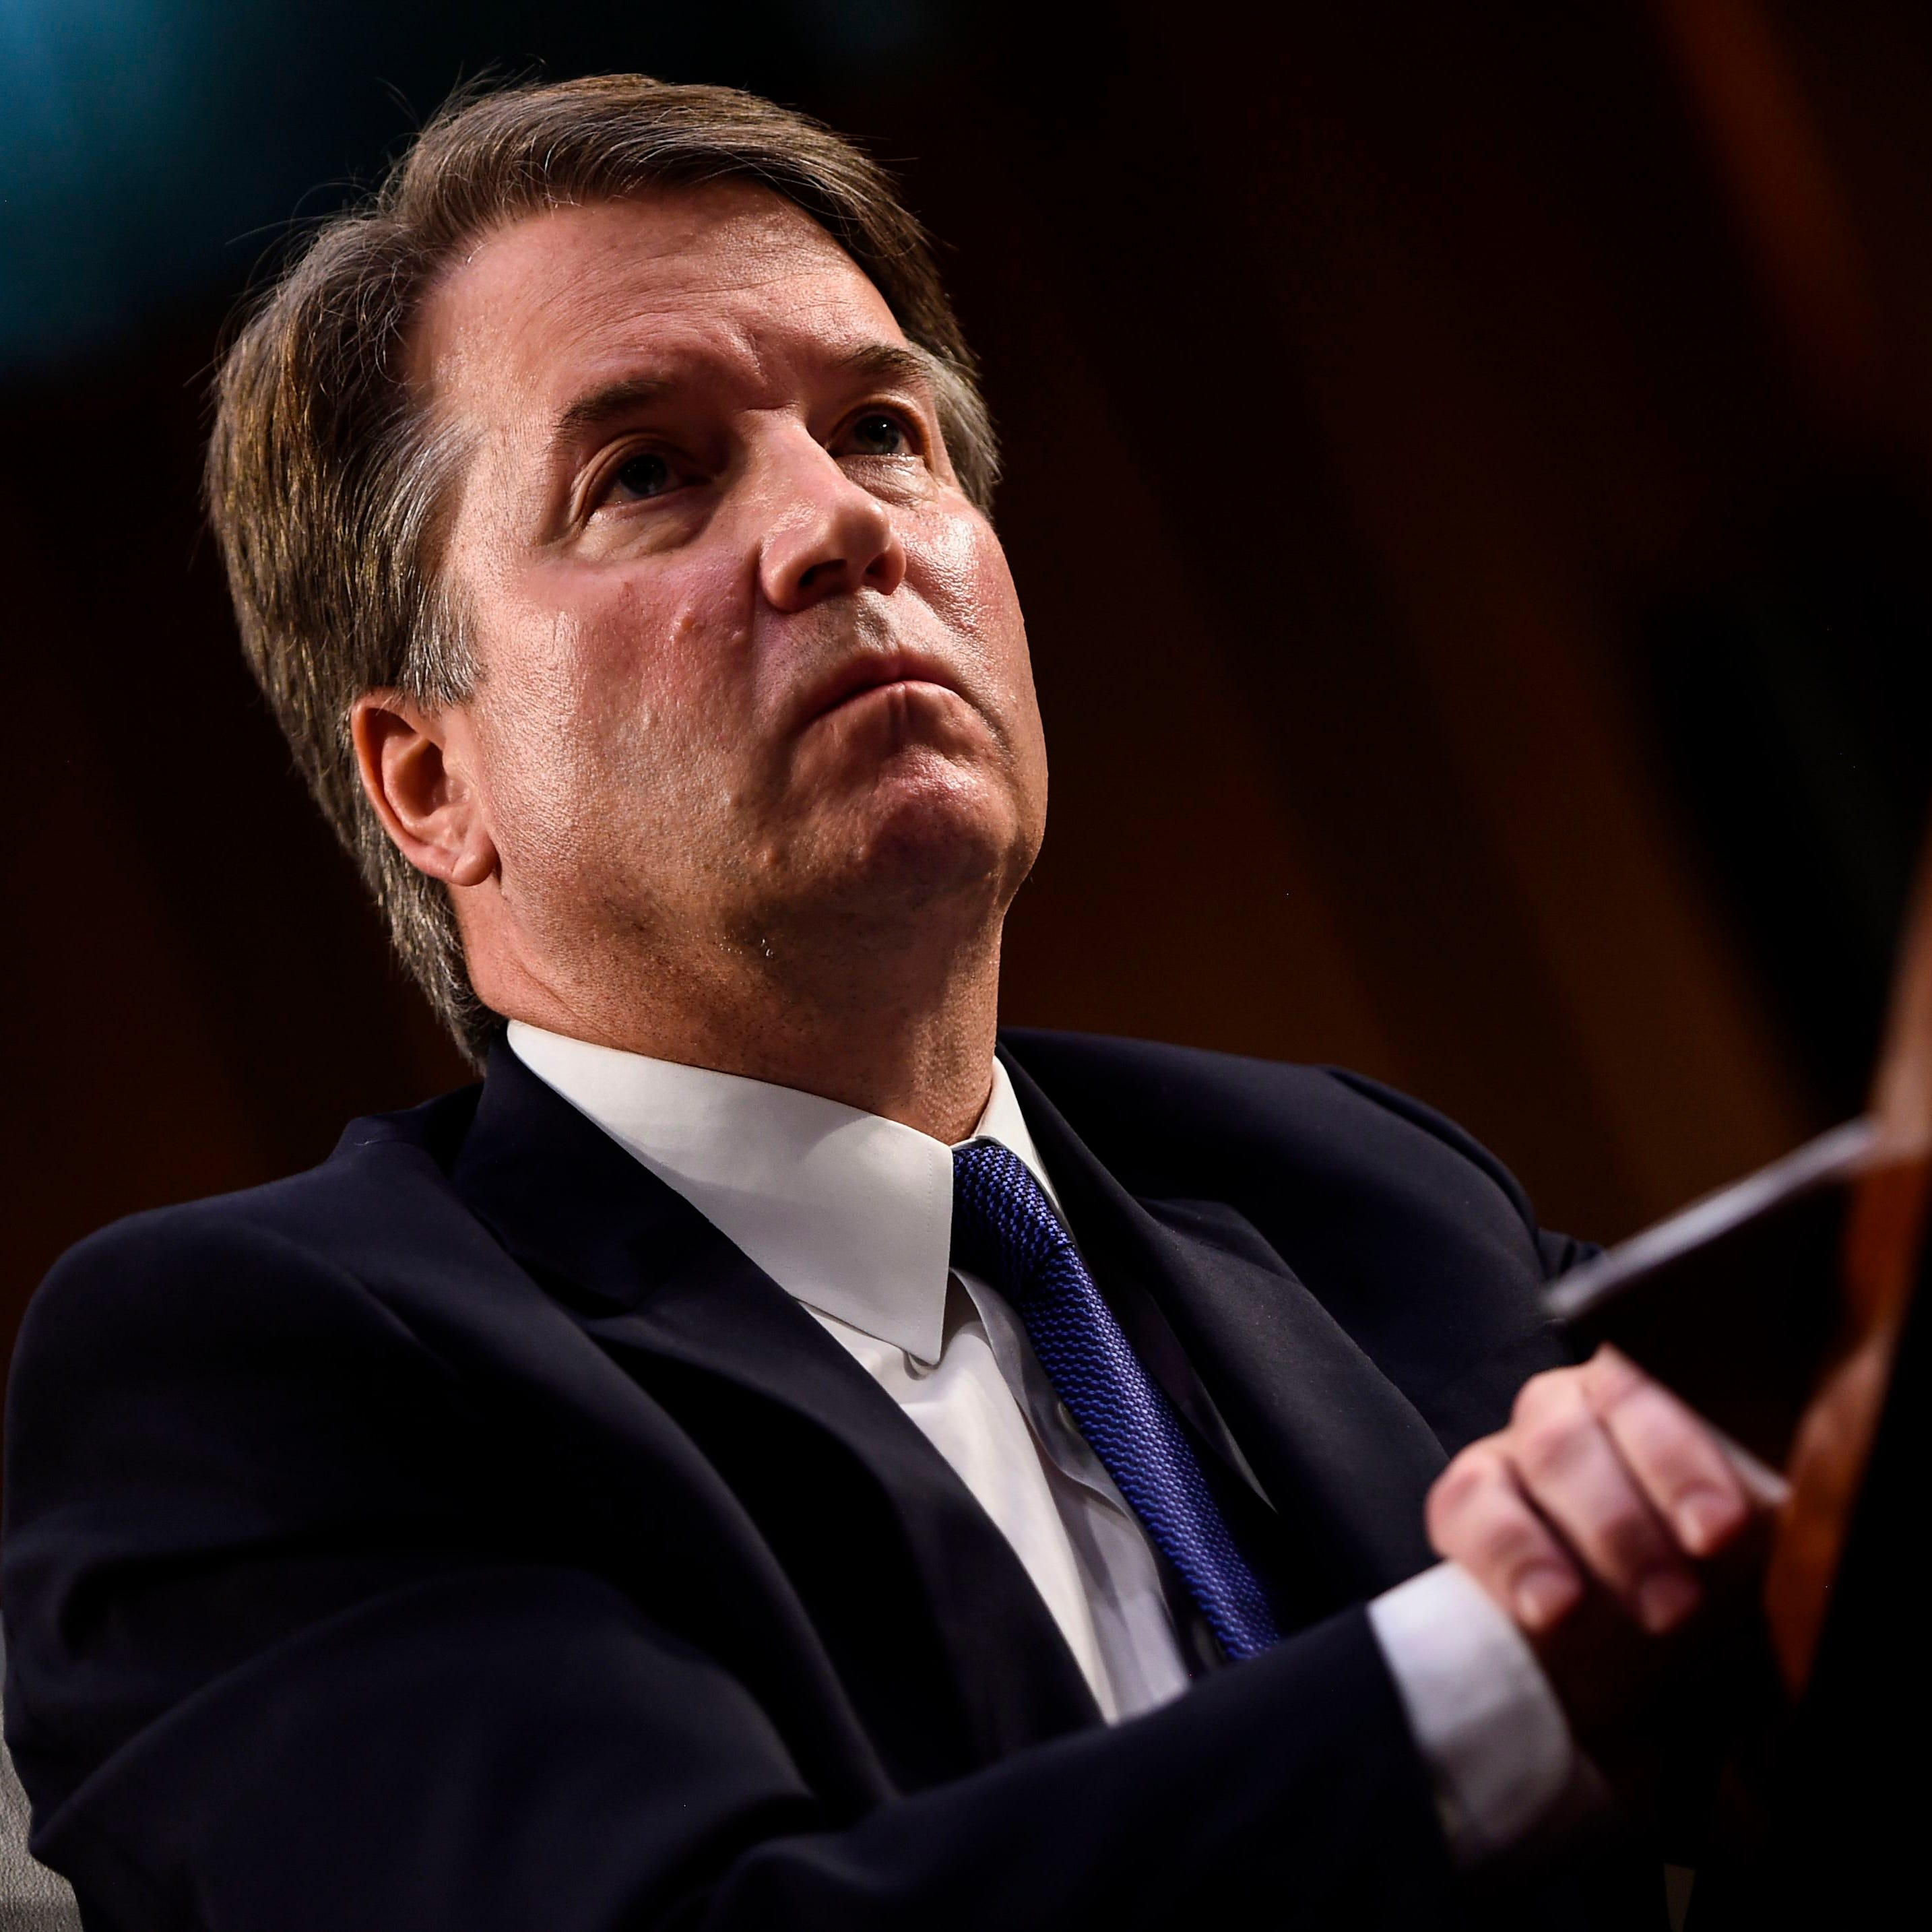 What we know about Deborah Ramirez, the second woman to accuse Kavanaugh of sexual assault